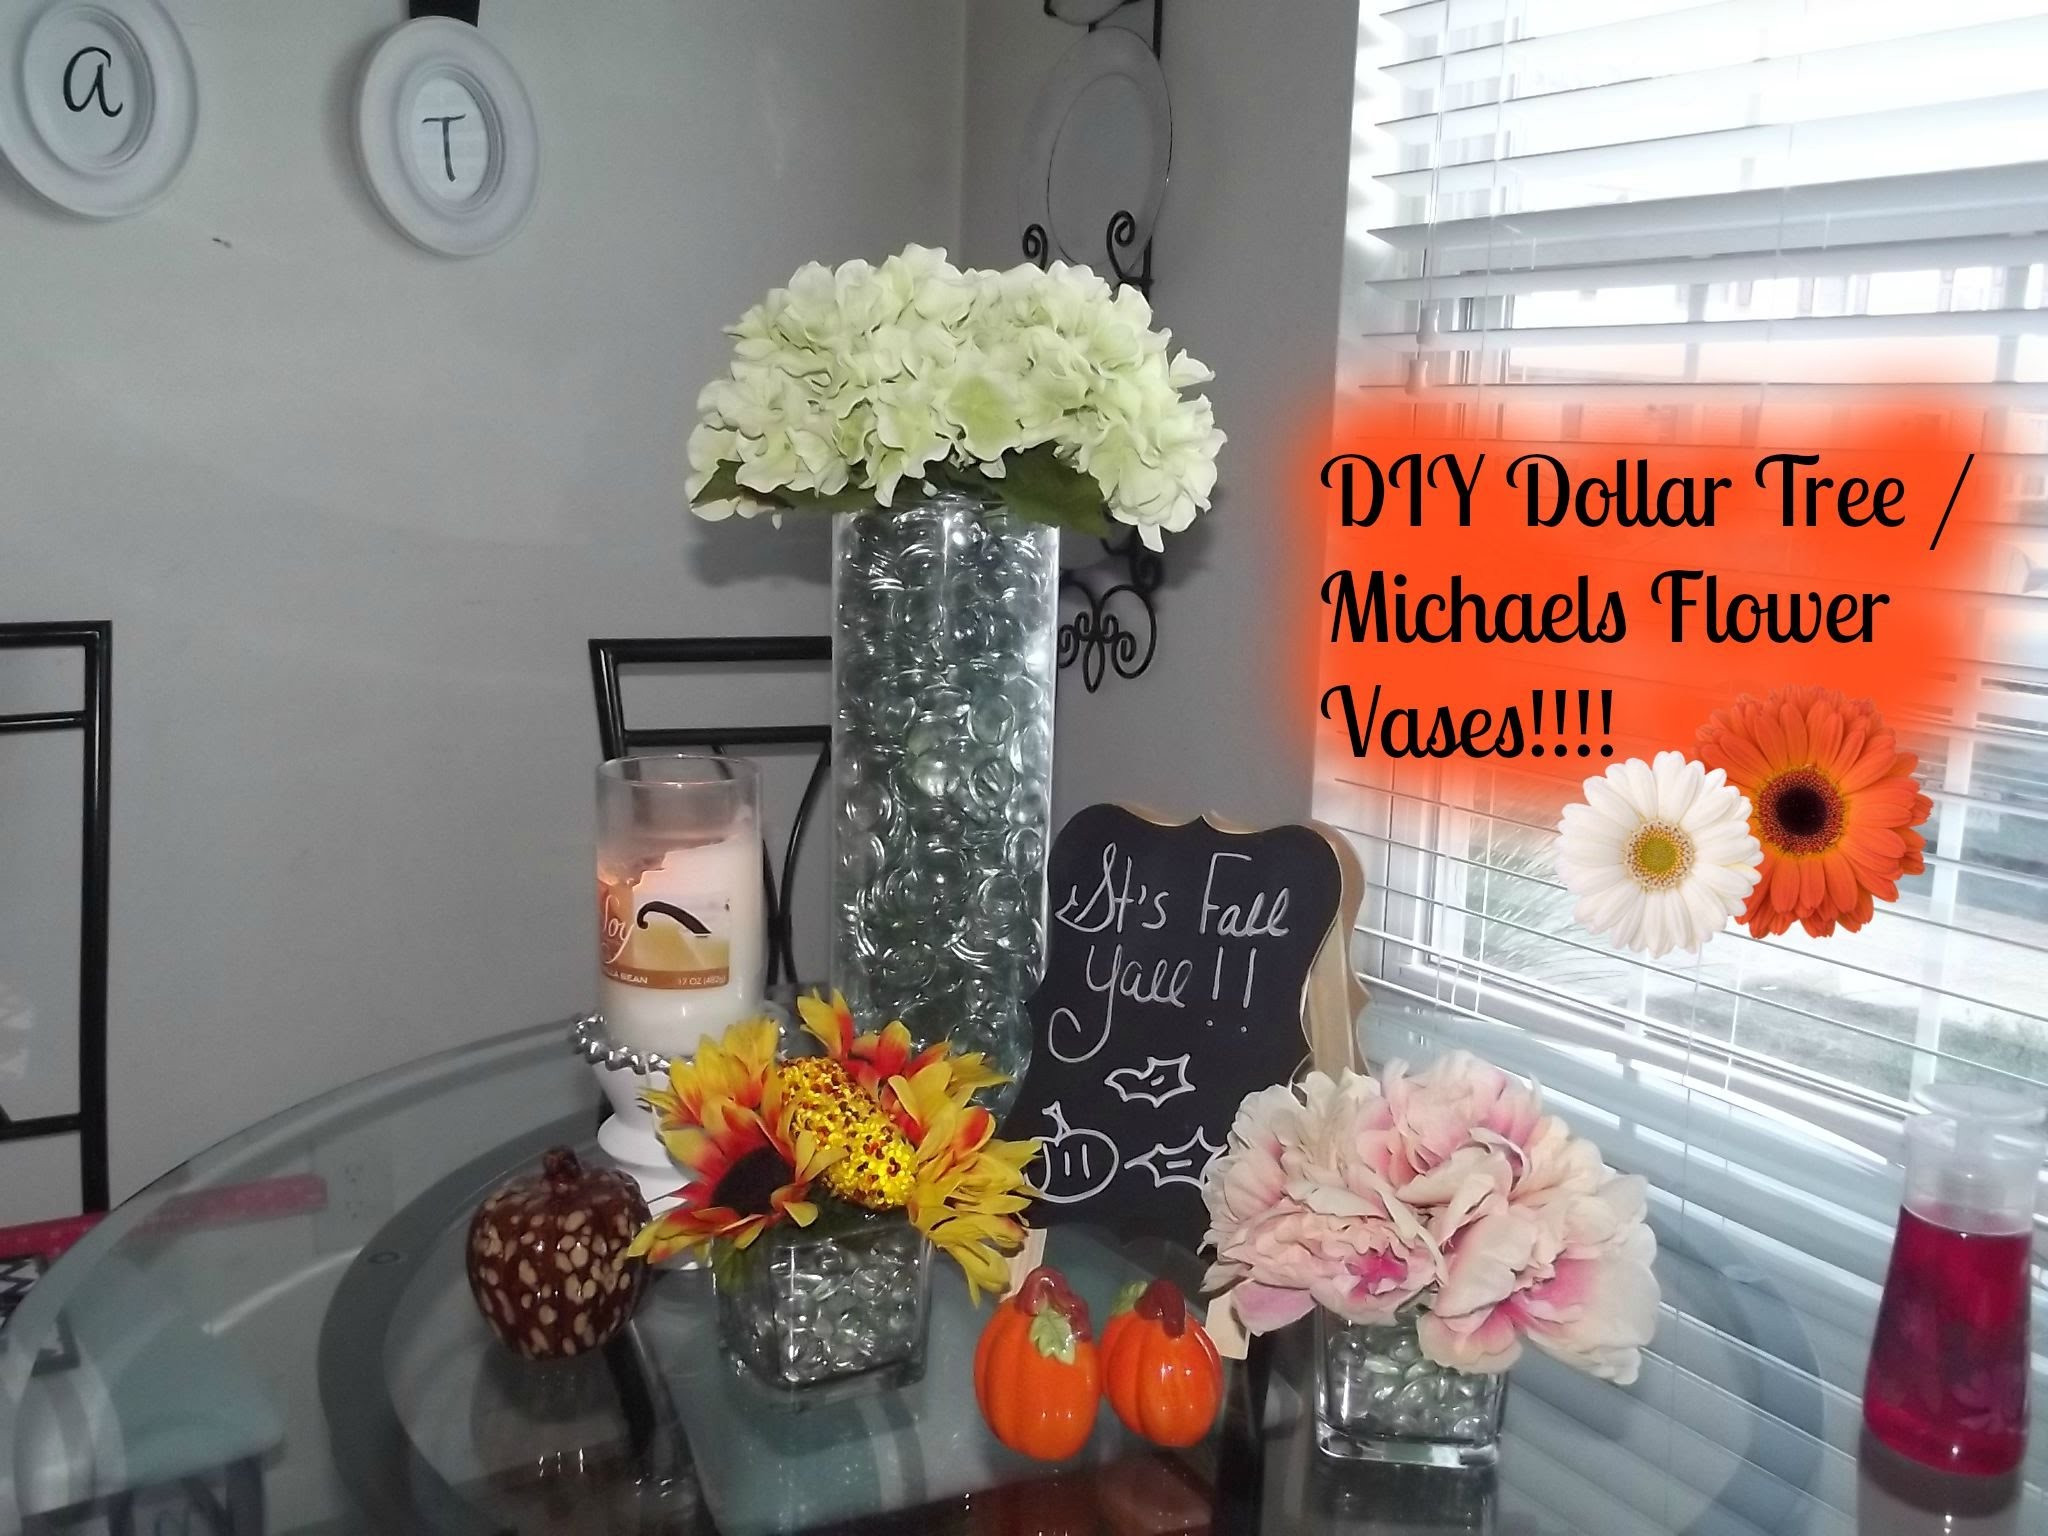 vases for centerpieces dollar store of michaels vases diy dollar tree centerpieces youtube poshbella us throughout michaels vases diy dollar tree centerpieces youtube